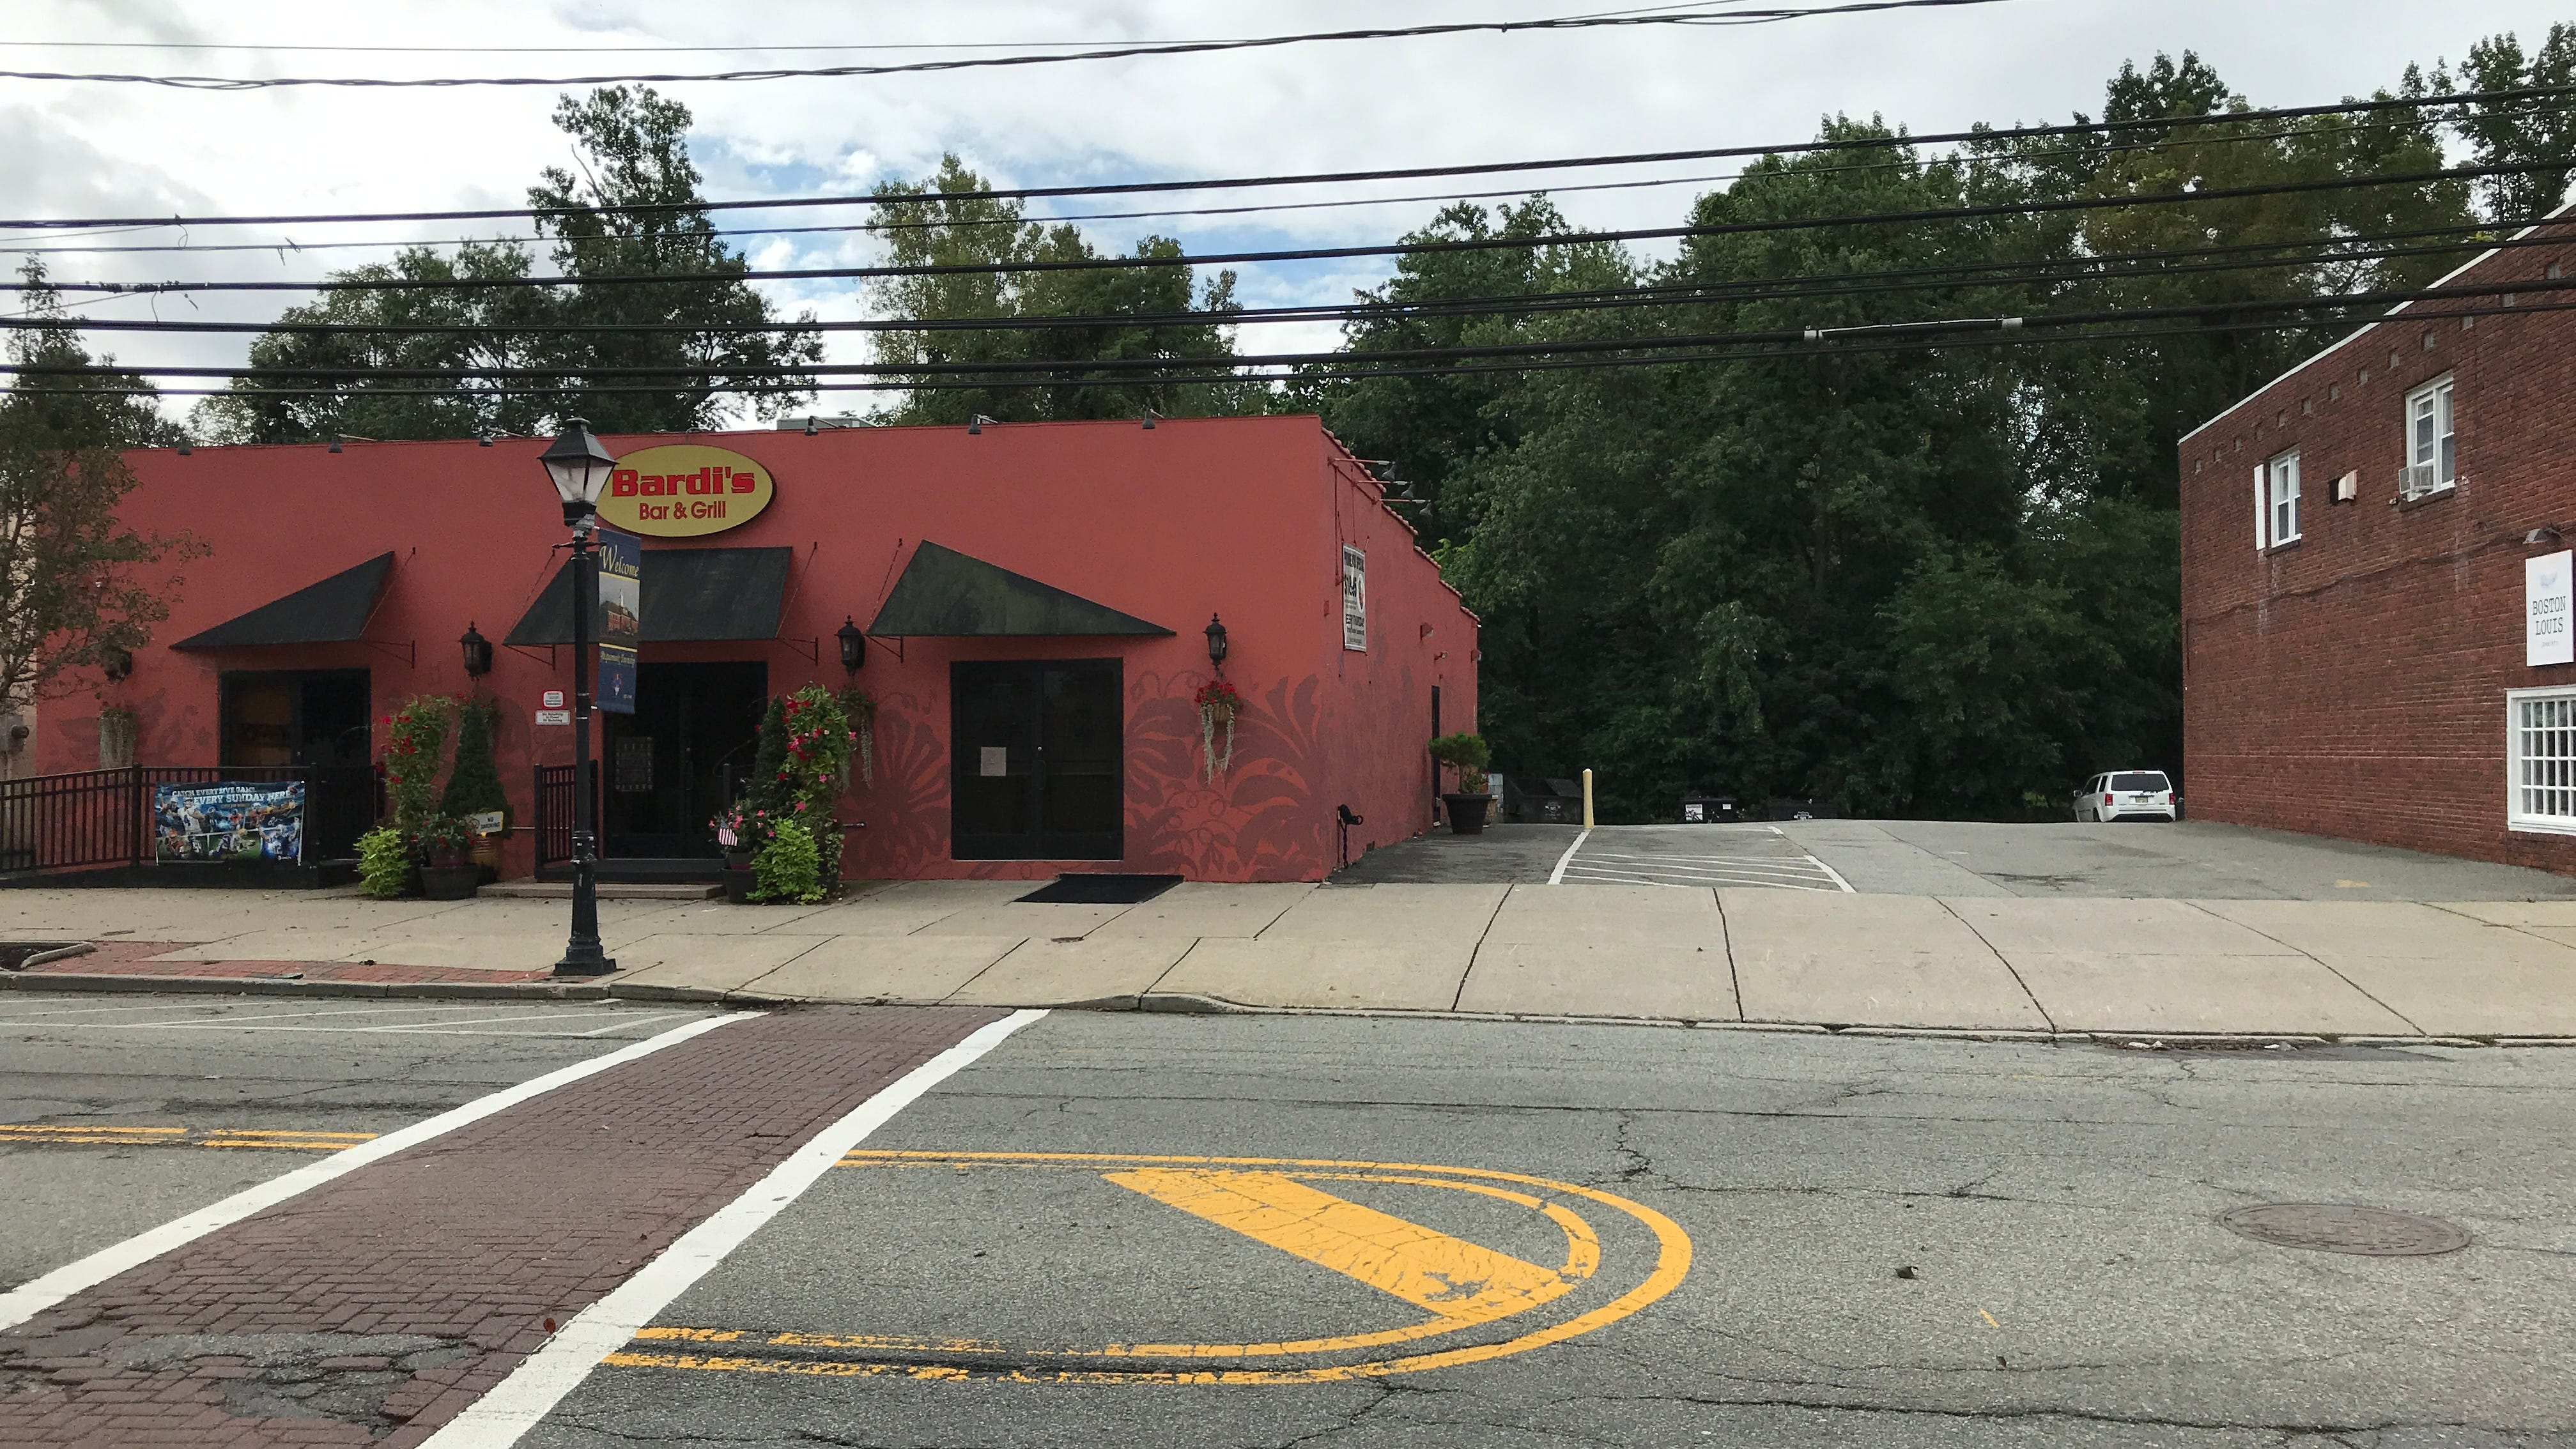 Bardi's Bar and Grill in Pequannock to add outdoor dining patio